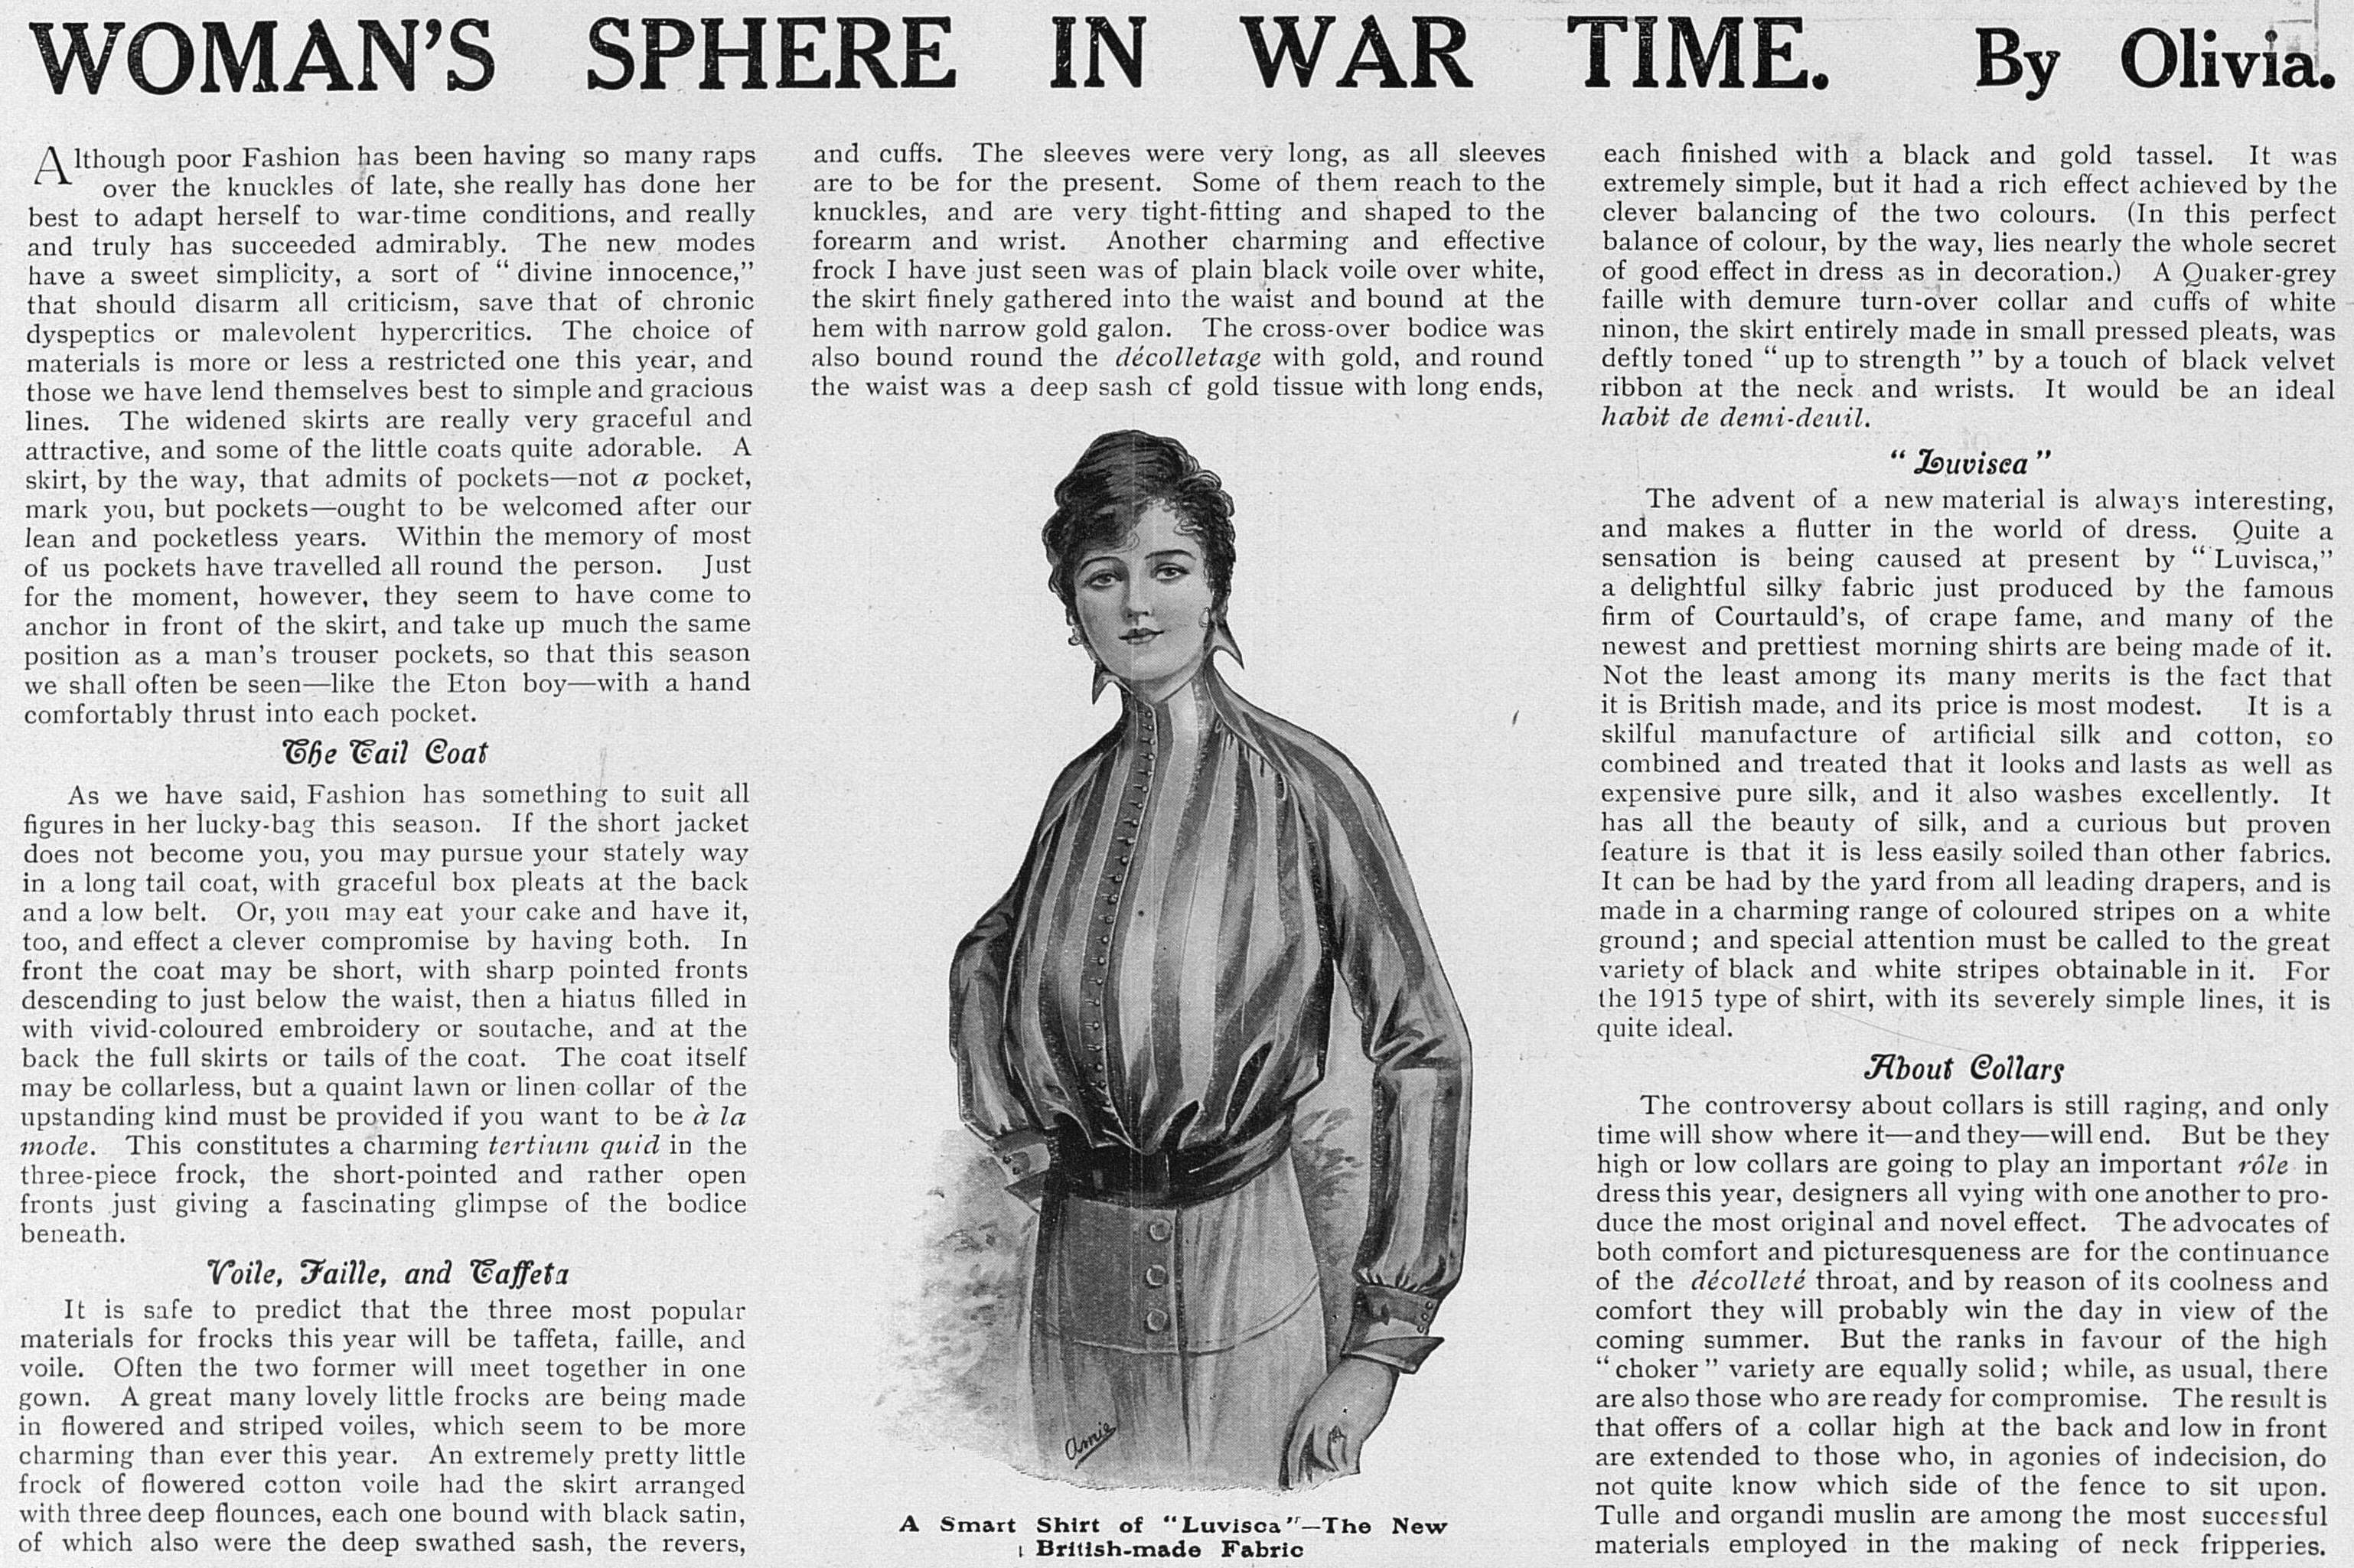 WomansSphereInWarTime_10Apr1915